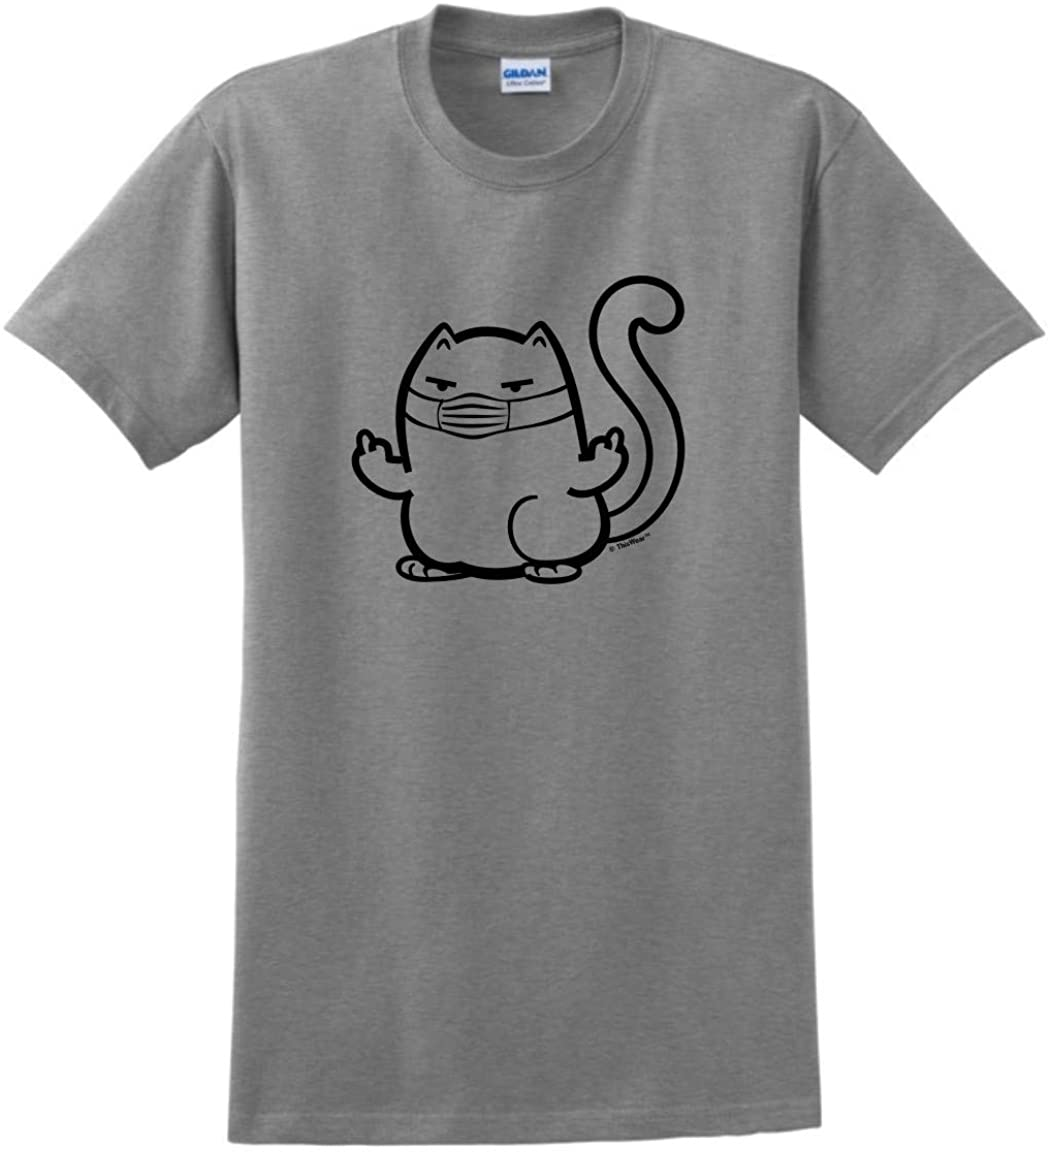 Rude Cat Meme with Face Mask T-Shirt